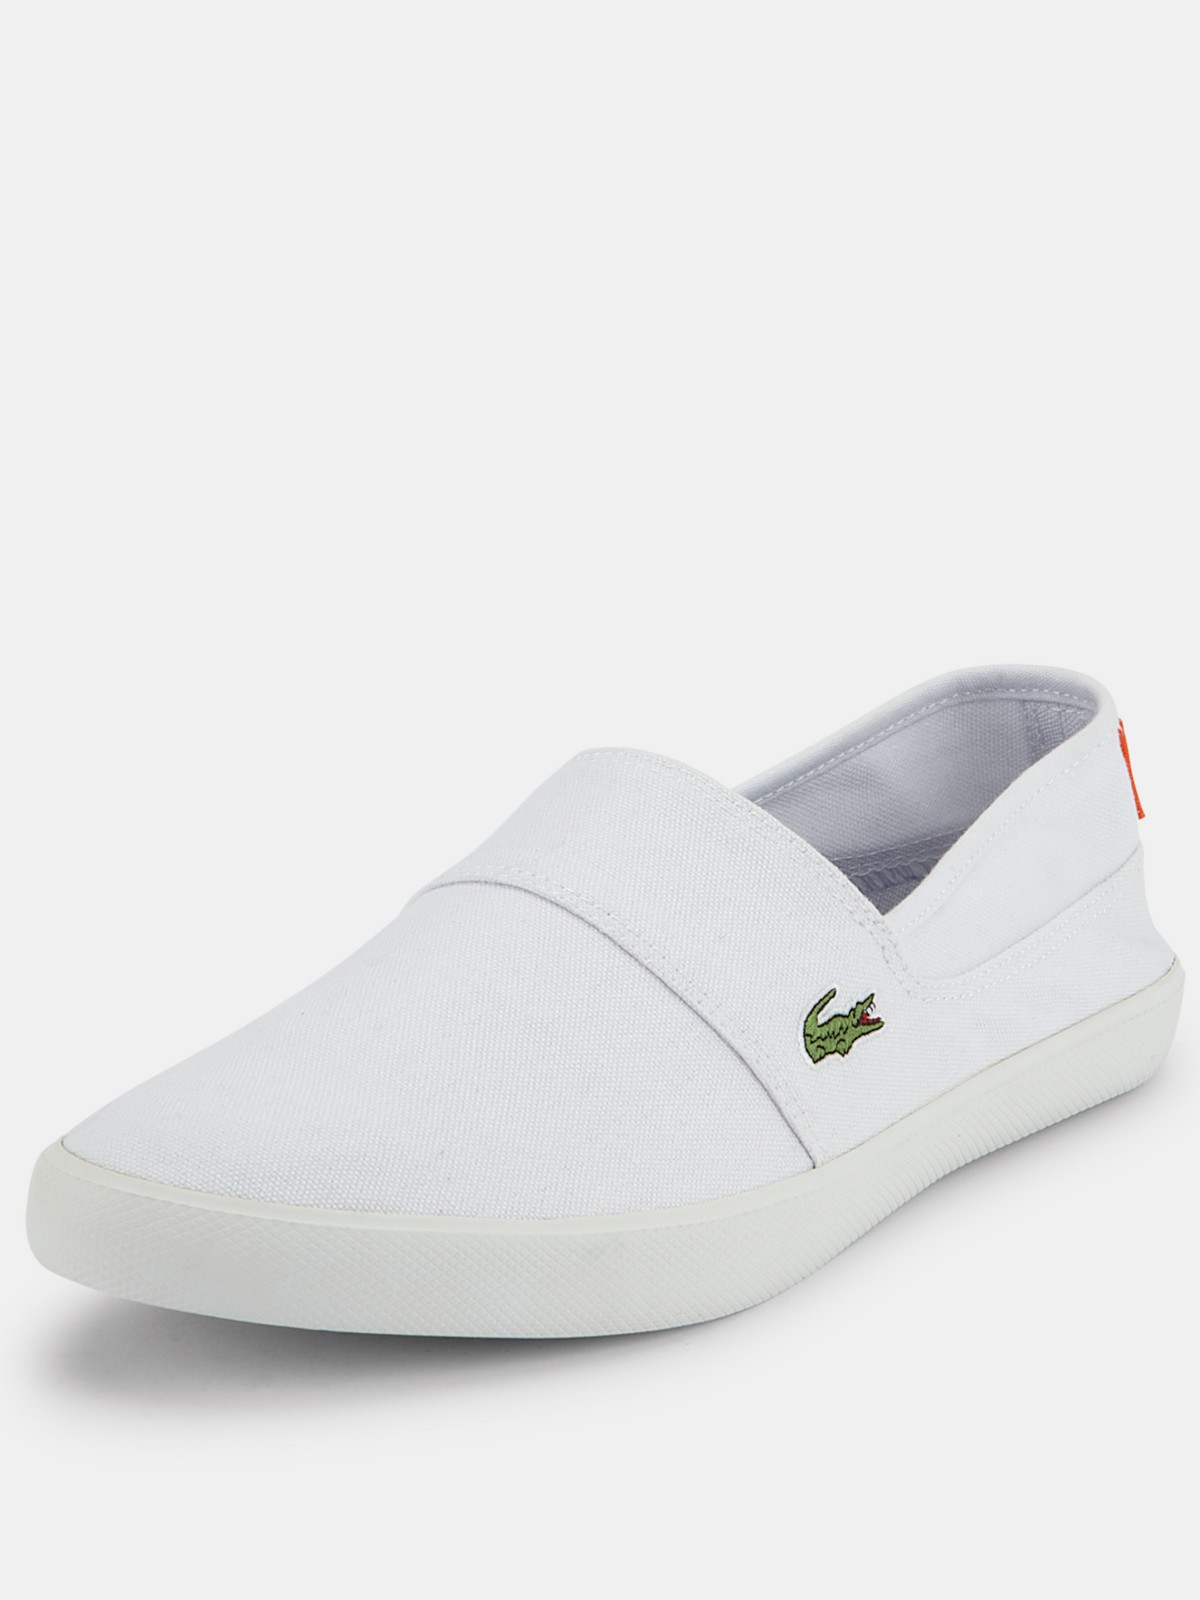 Find great deals on eBay for mens white plimsolls. Shop with confidence.